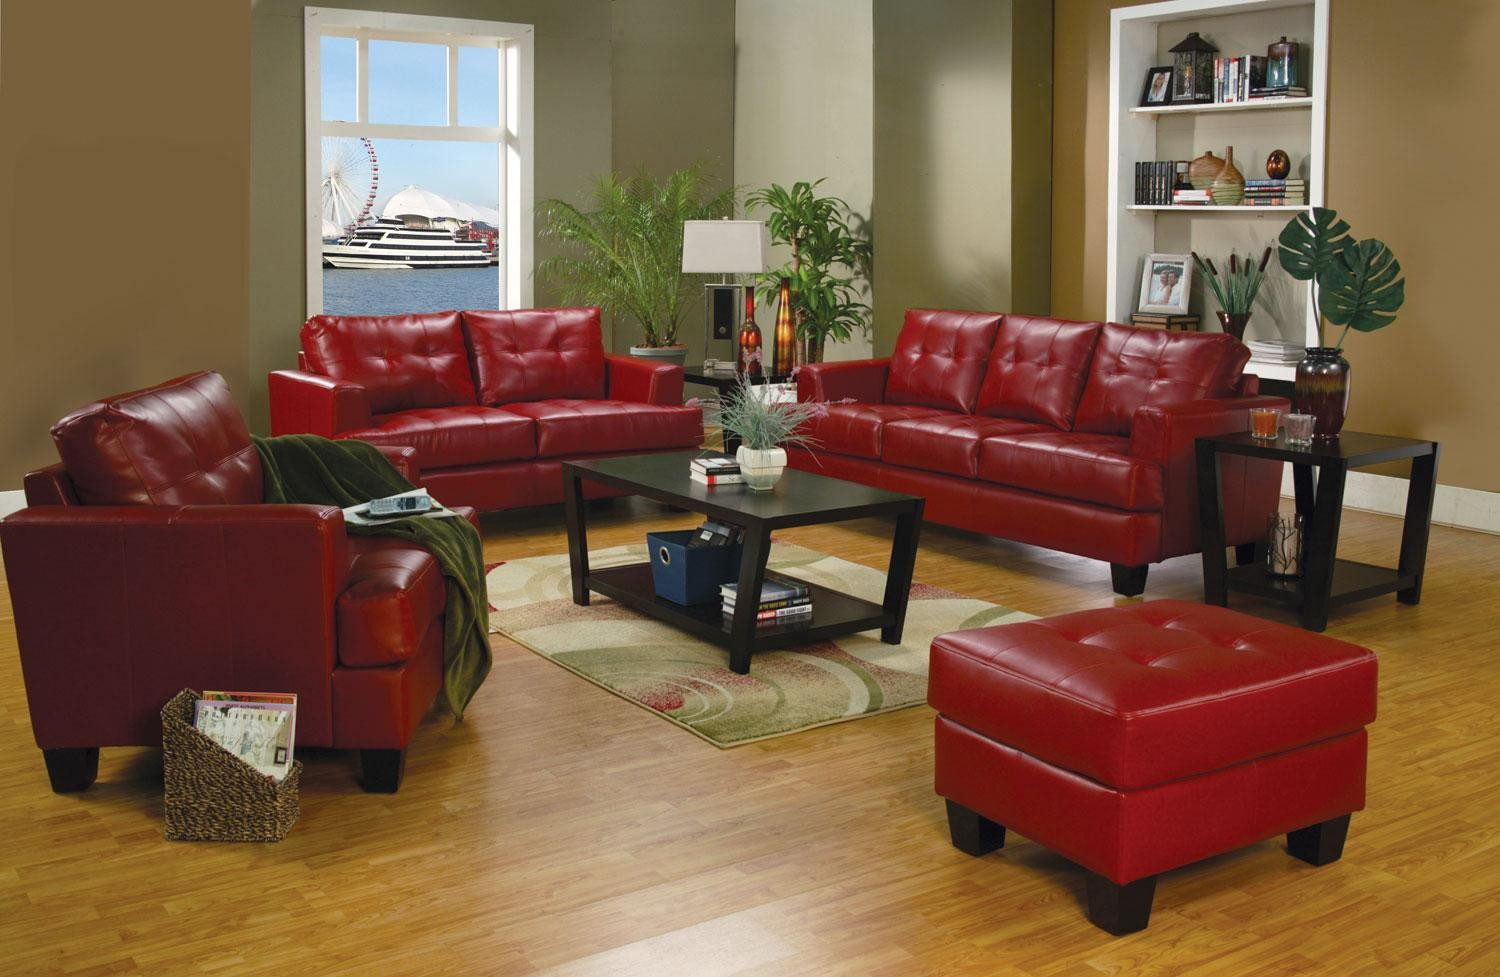 samuel red leather living room set 501831 from coaster 501831